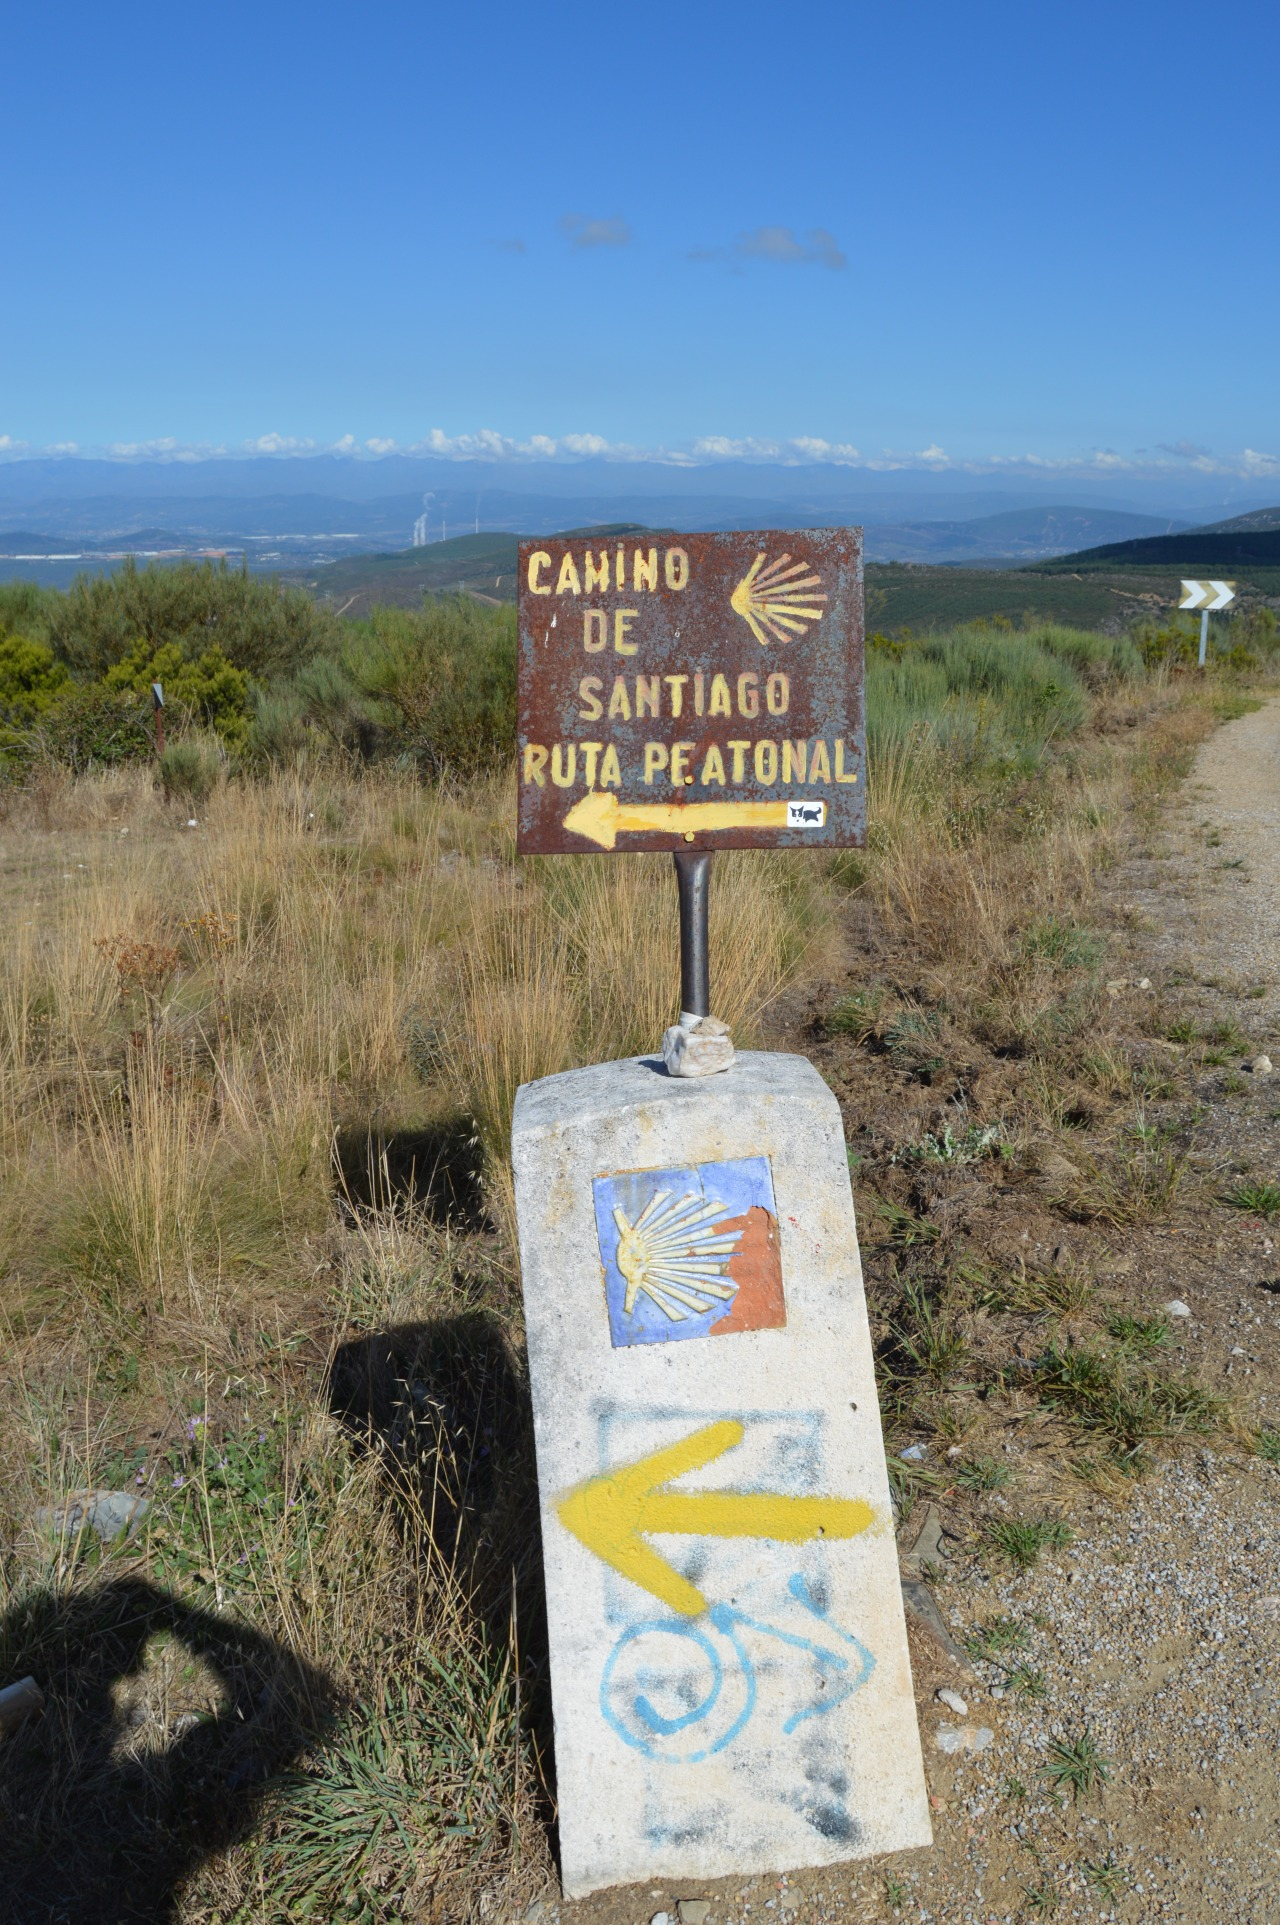 Day 20 – The Heights of the Camino